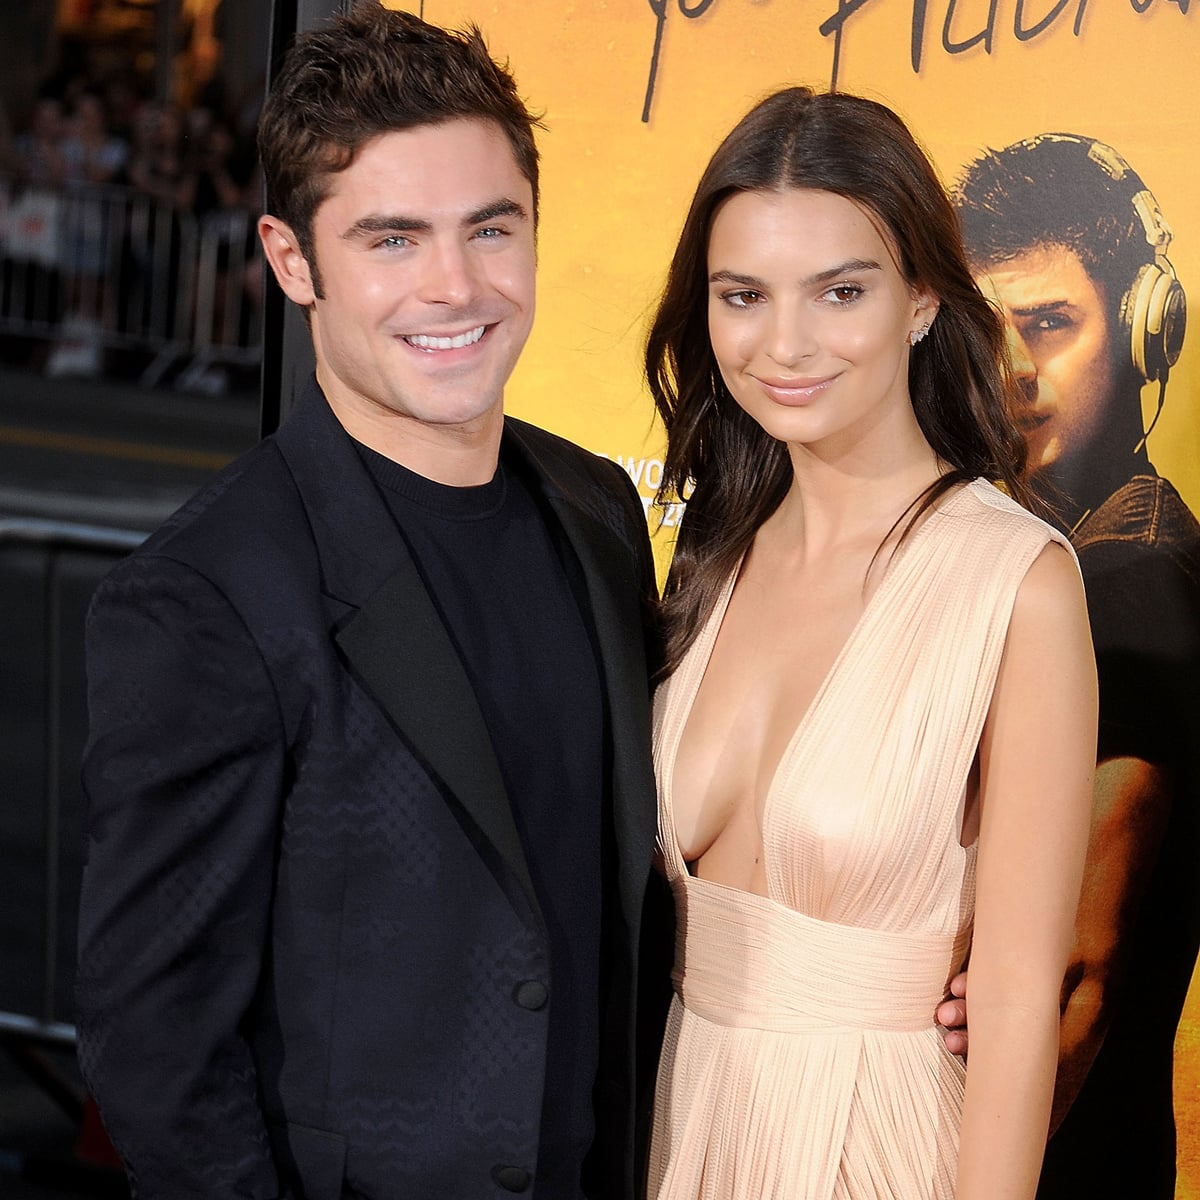 Zac and emily dating